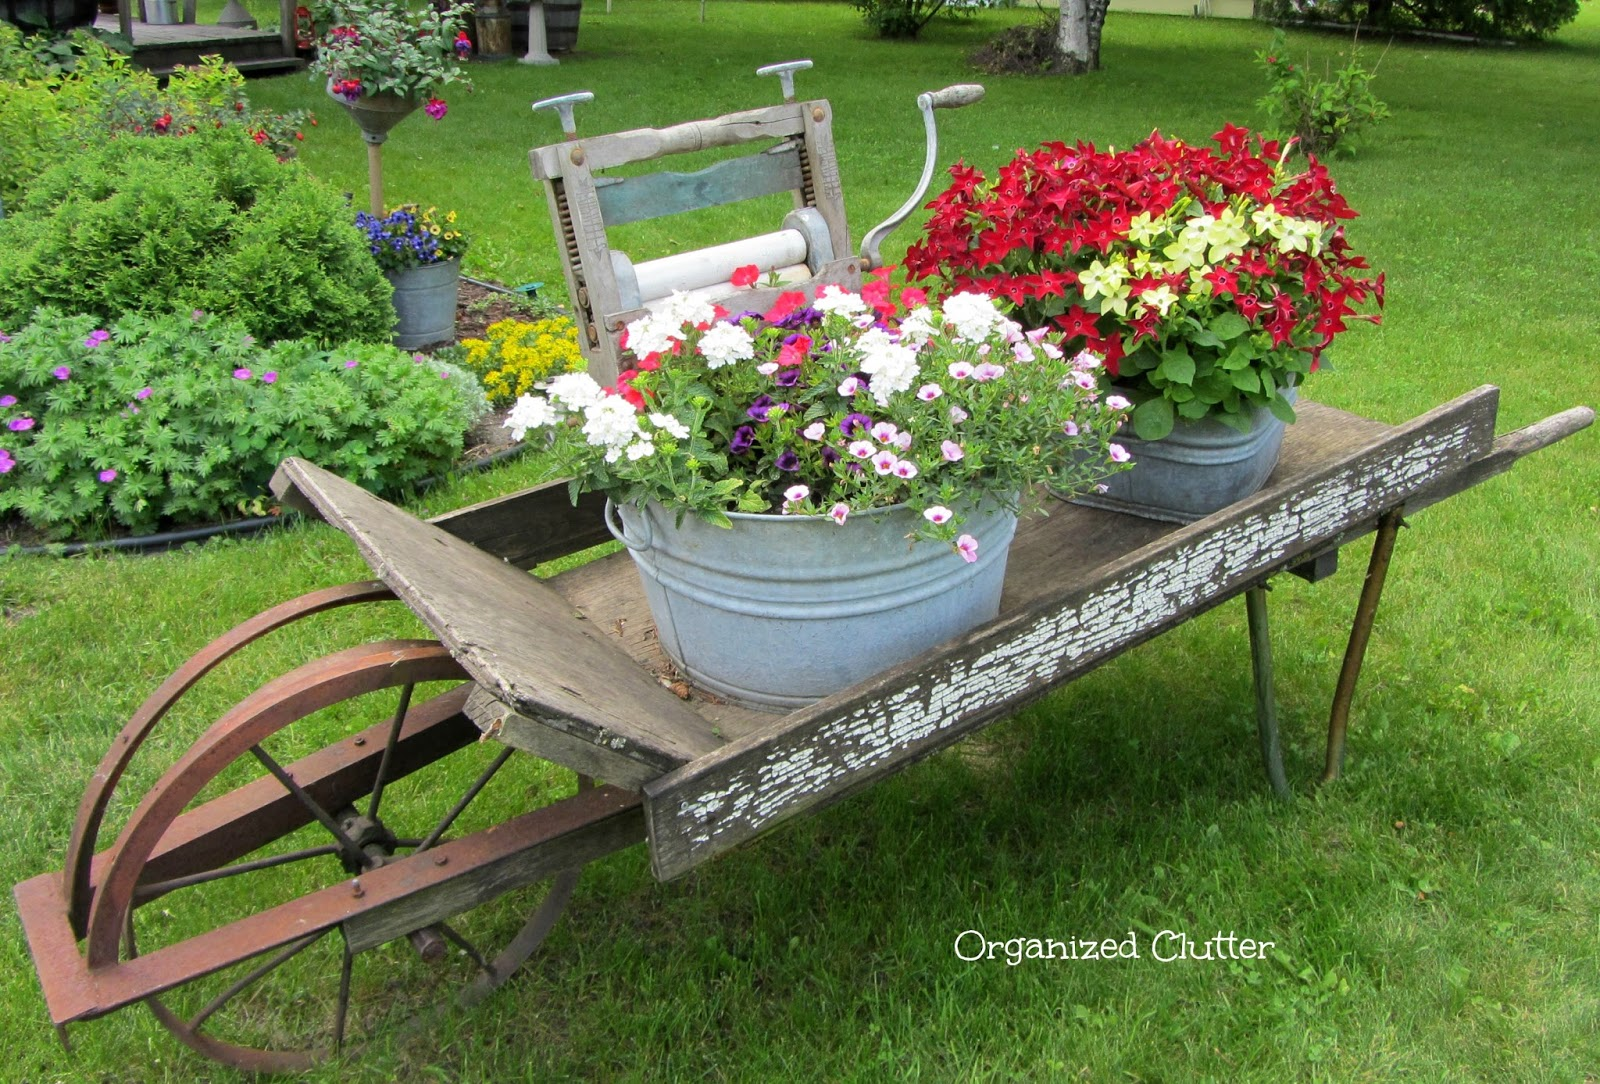 Flower Garden Ideas With Old Wheelbarrow organized clutter: july 2014